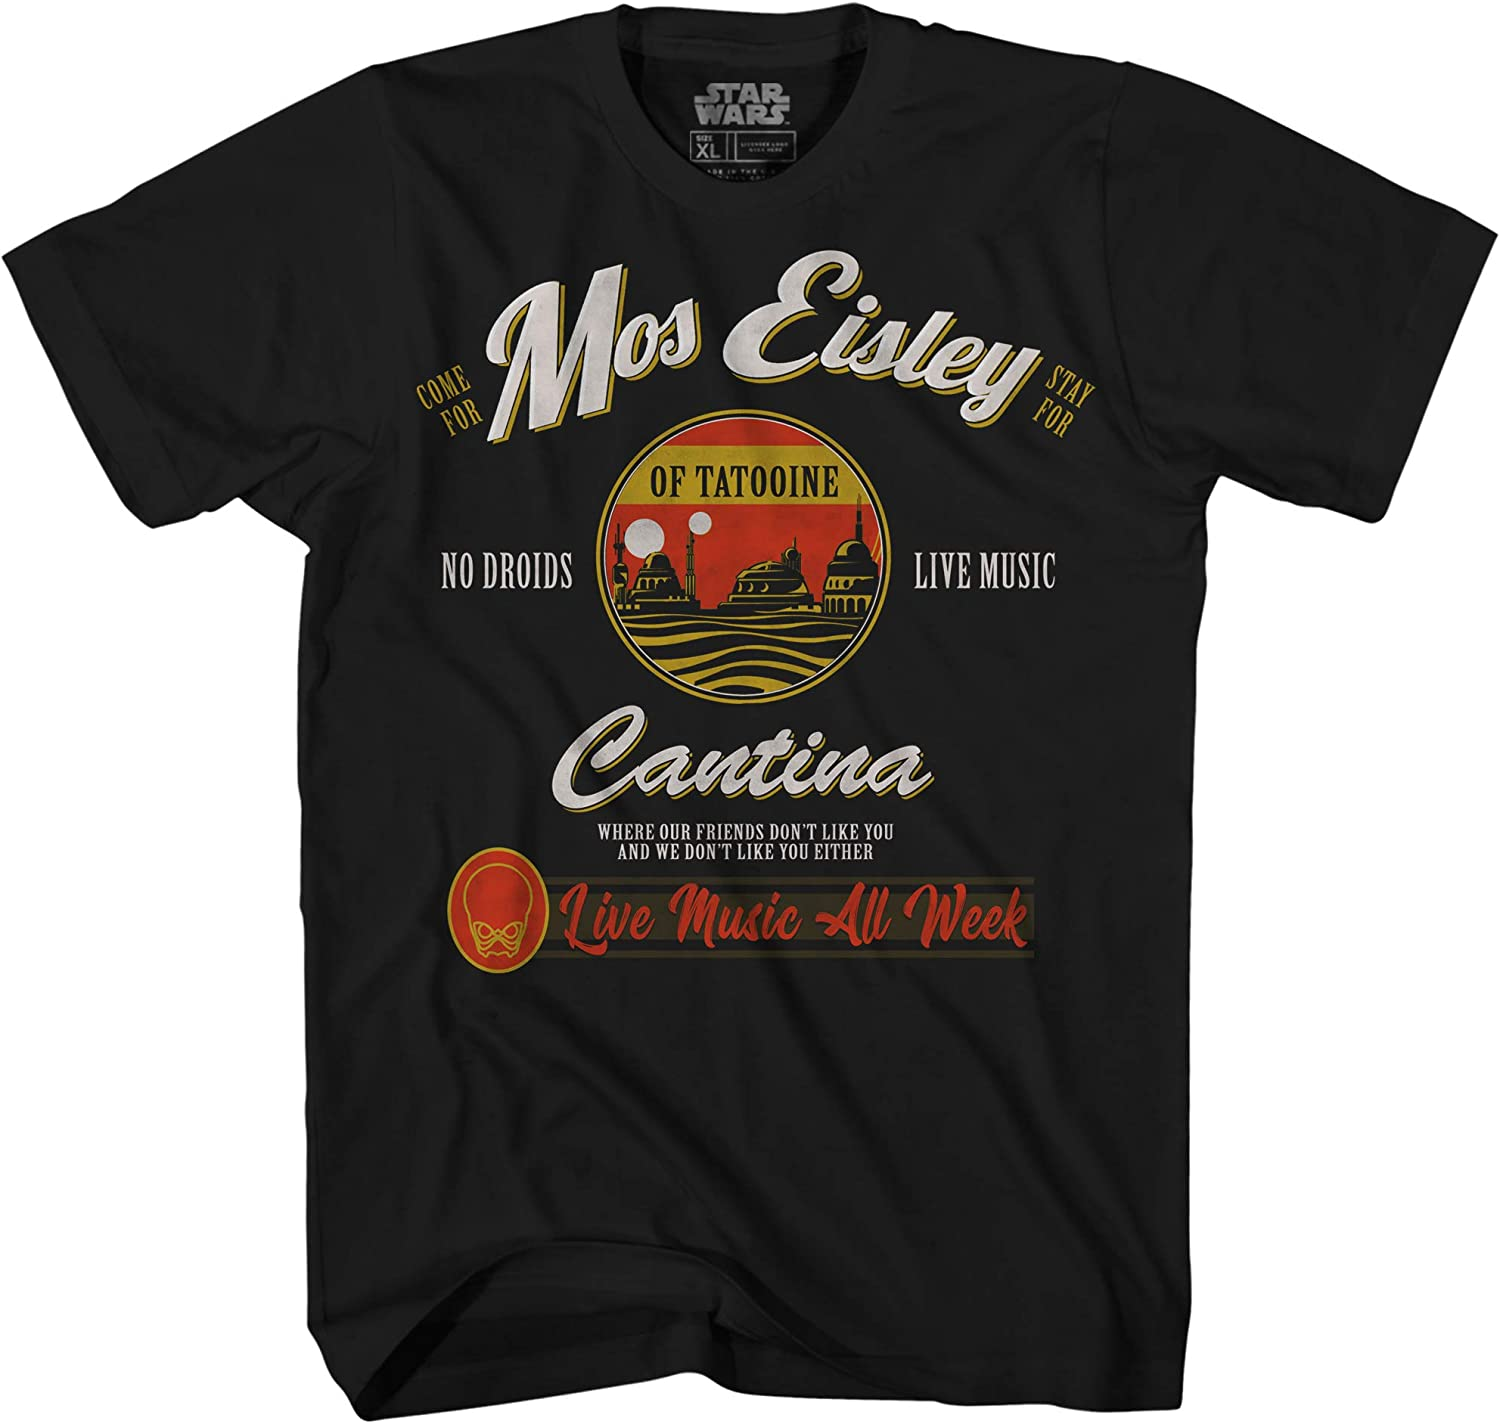 Star Wars Mos Eisley Cantina Tatooine Men's Adult Graphic Tee T-Shirt